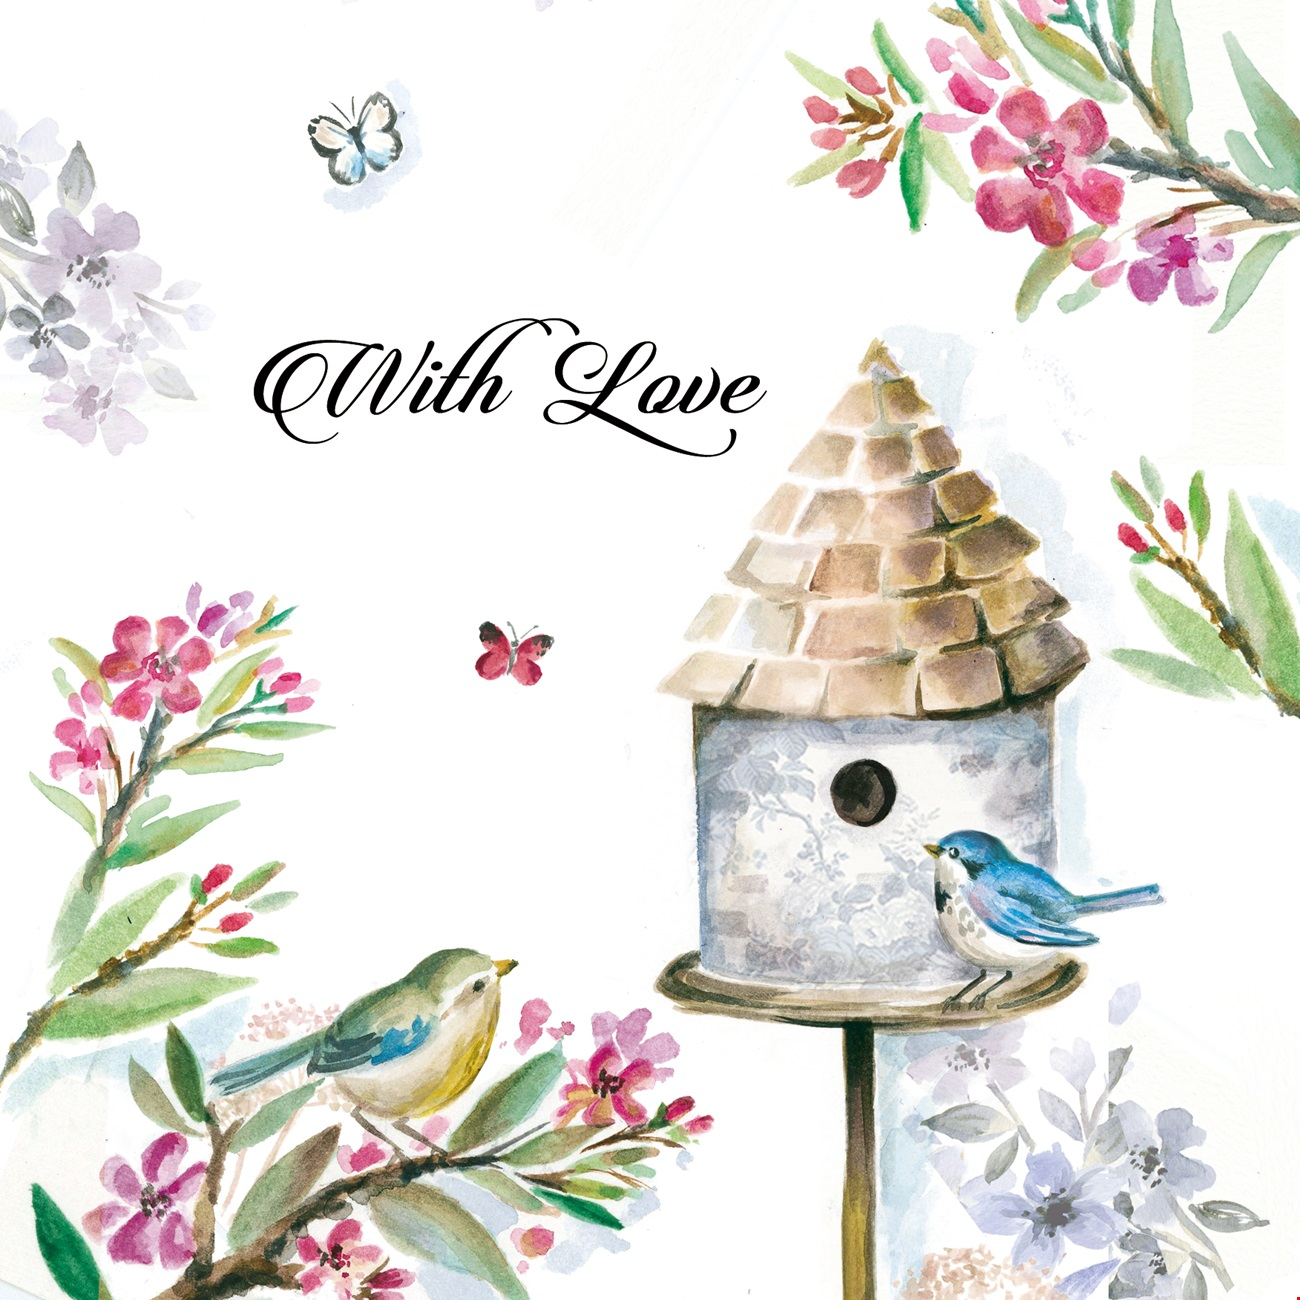 Greetings Card With Love- Birdhouse with Flowers